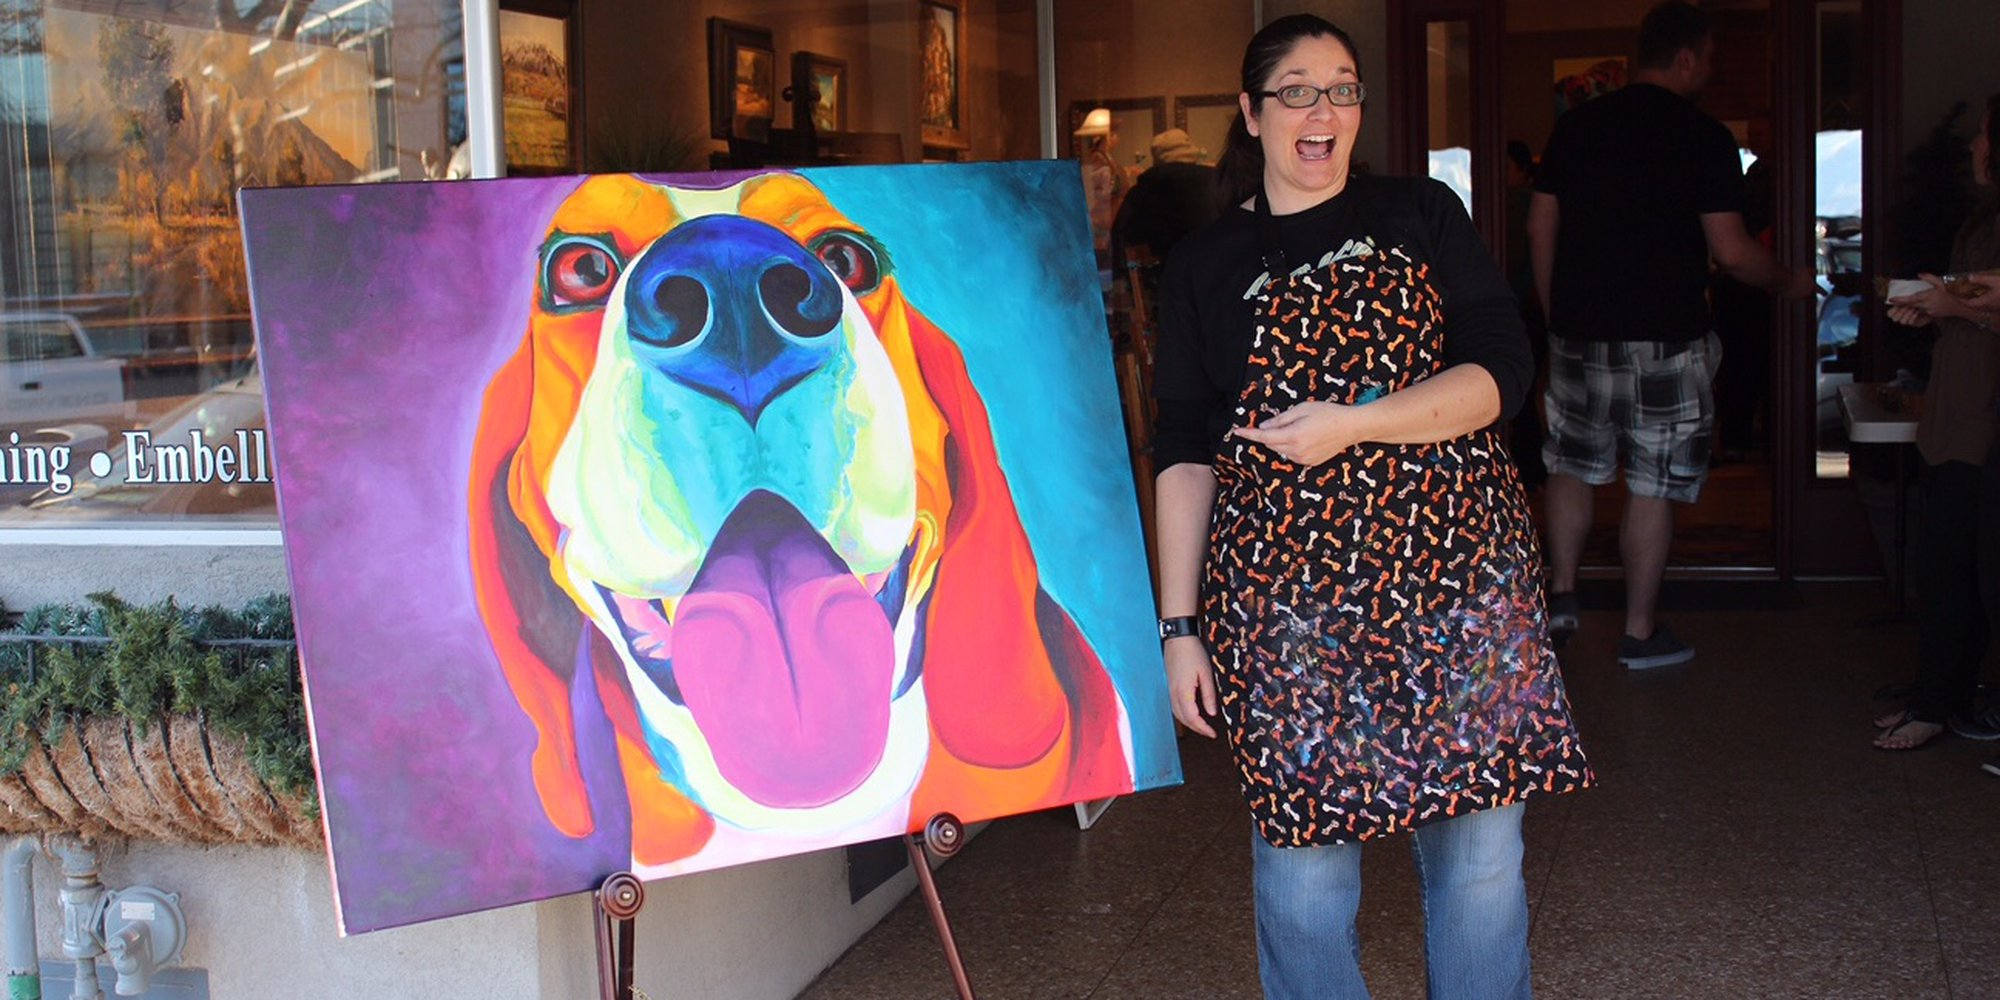 Fooled You! George W. Bush didn't join Artfinder, but pet portrait artist, Alicia VanNoy Call did